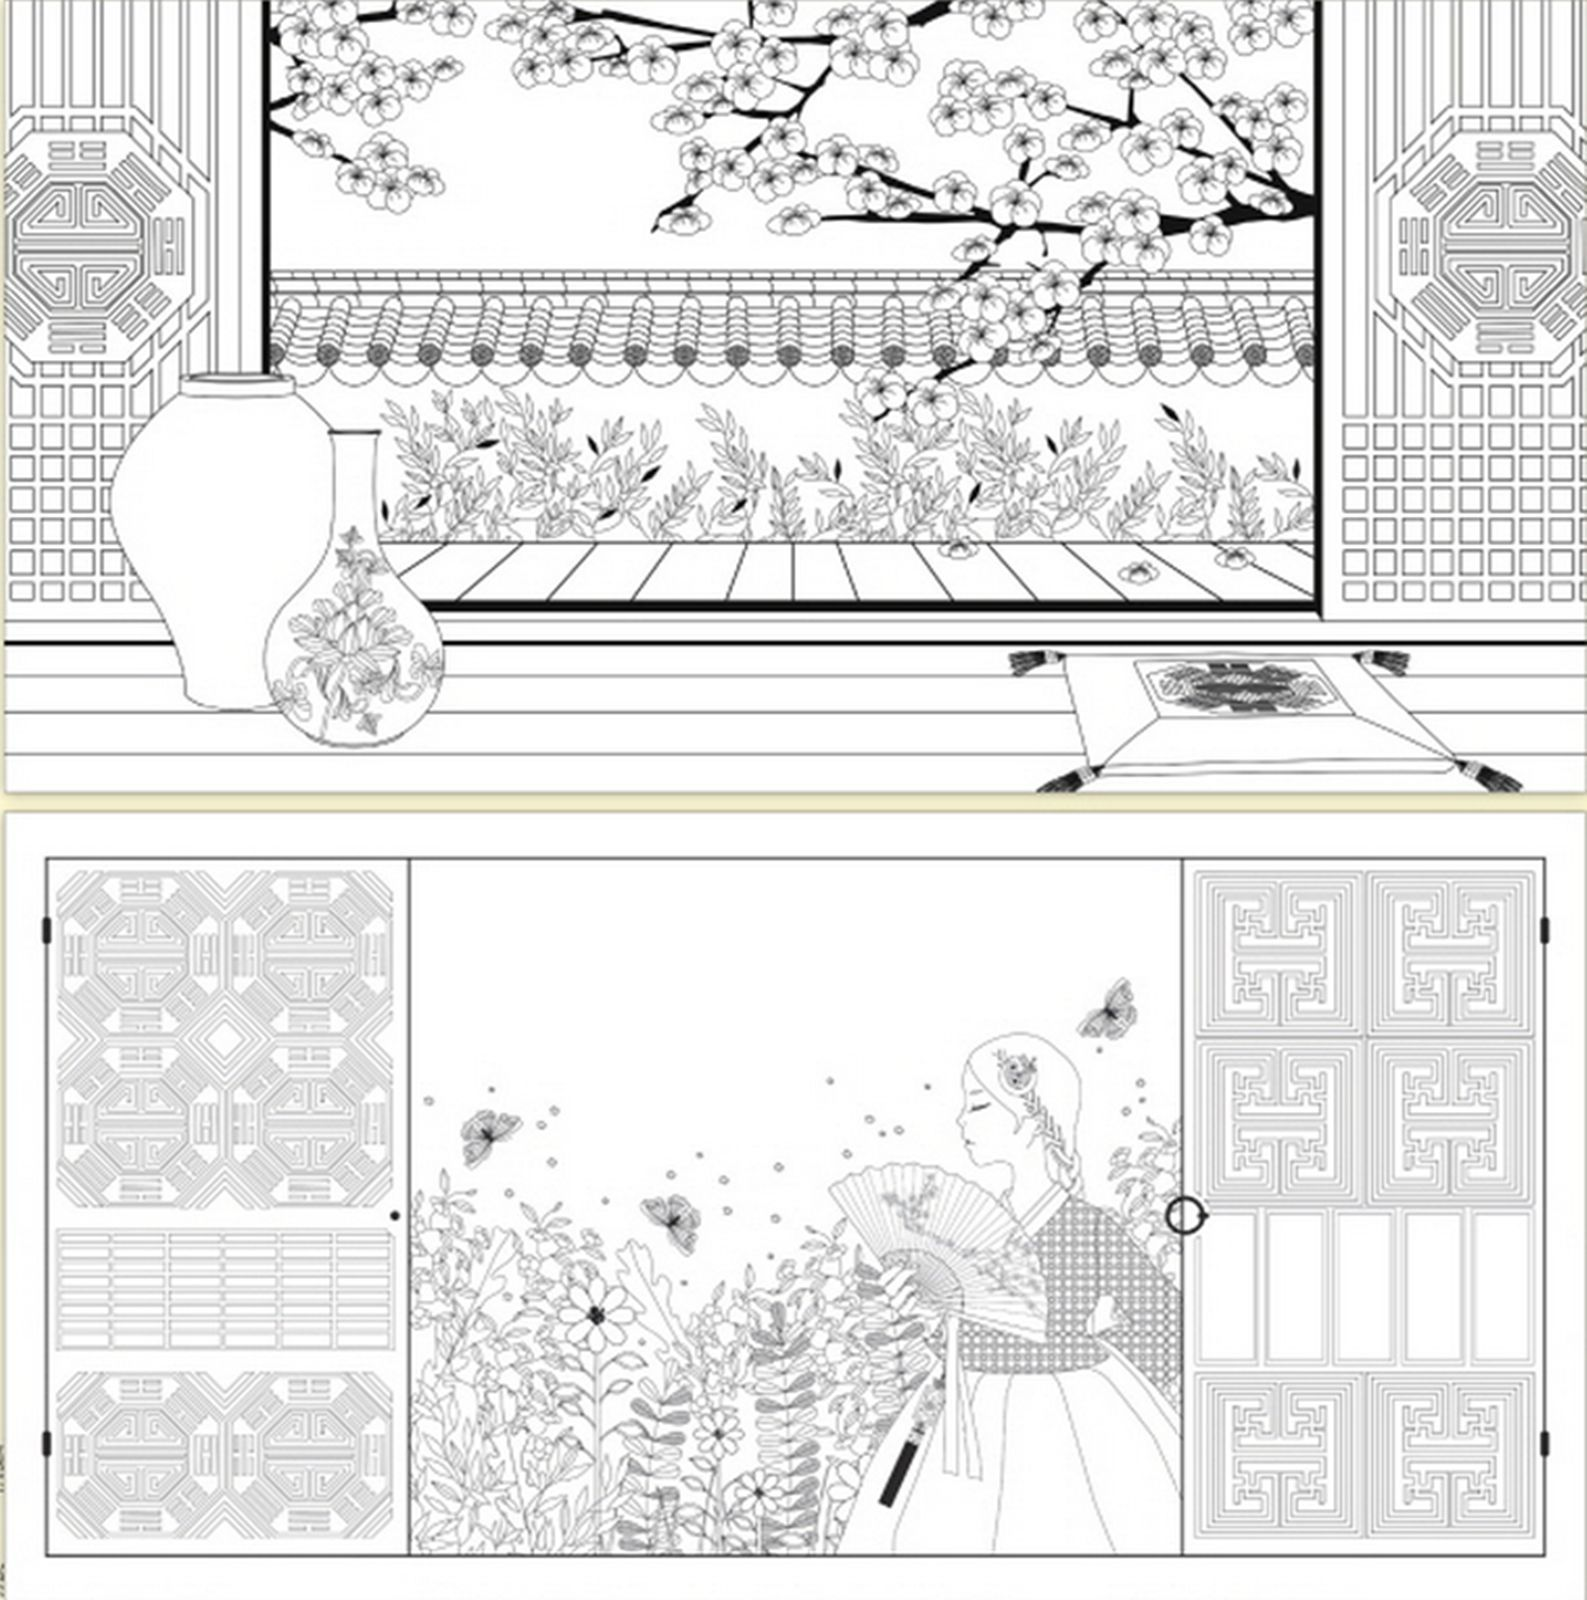 Scenery Of The Mind Coloring Book For Adult Korean Tradition Gift Fun Relax DIY